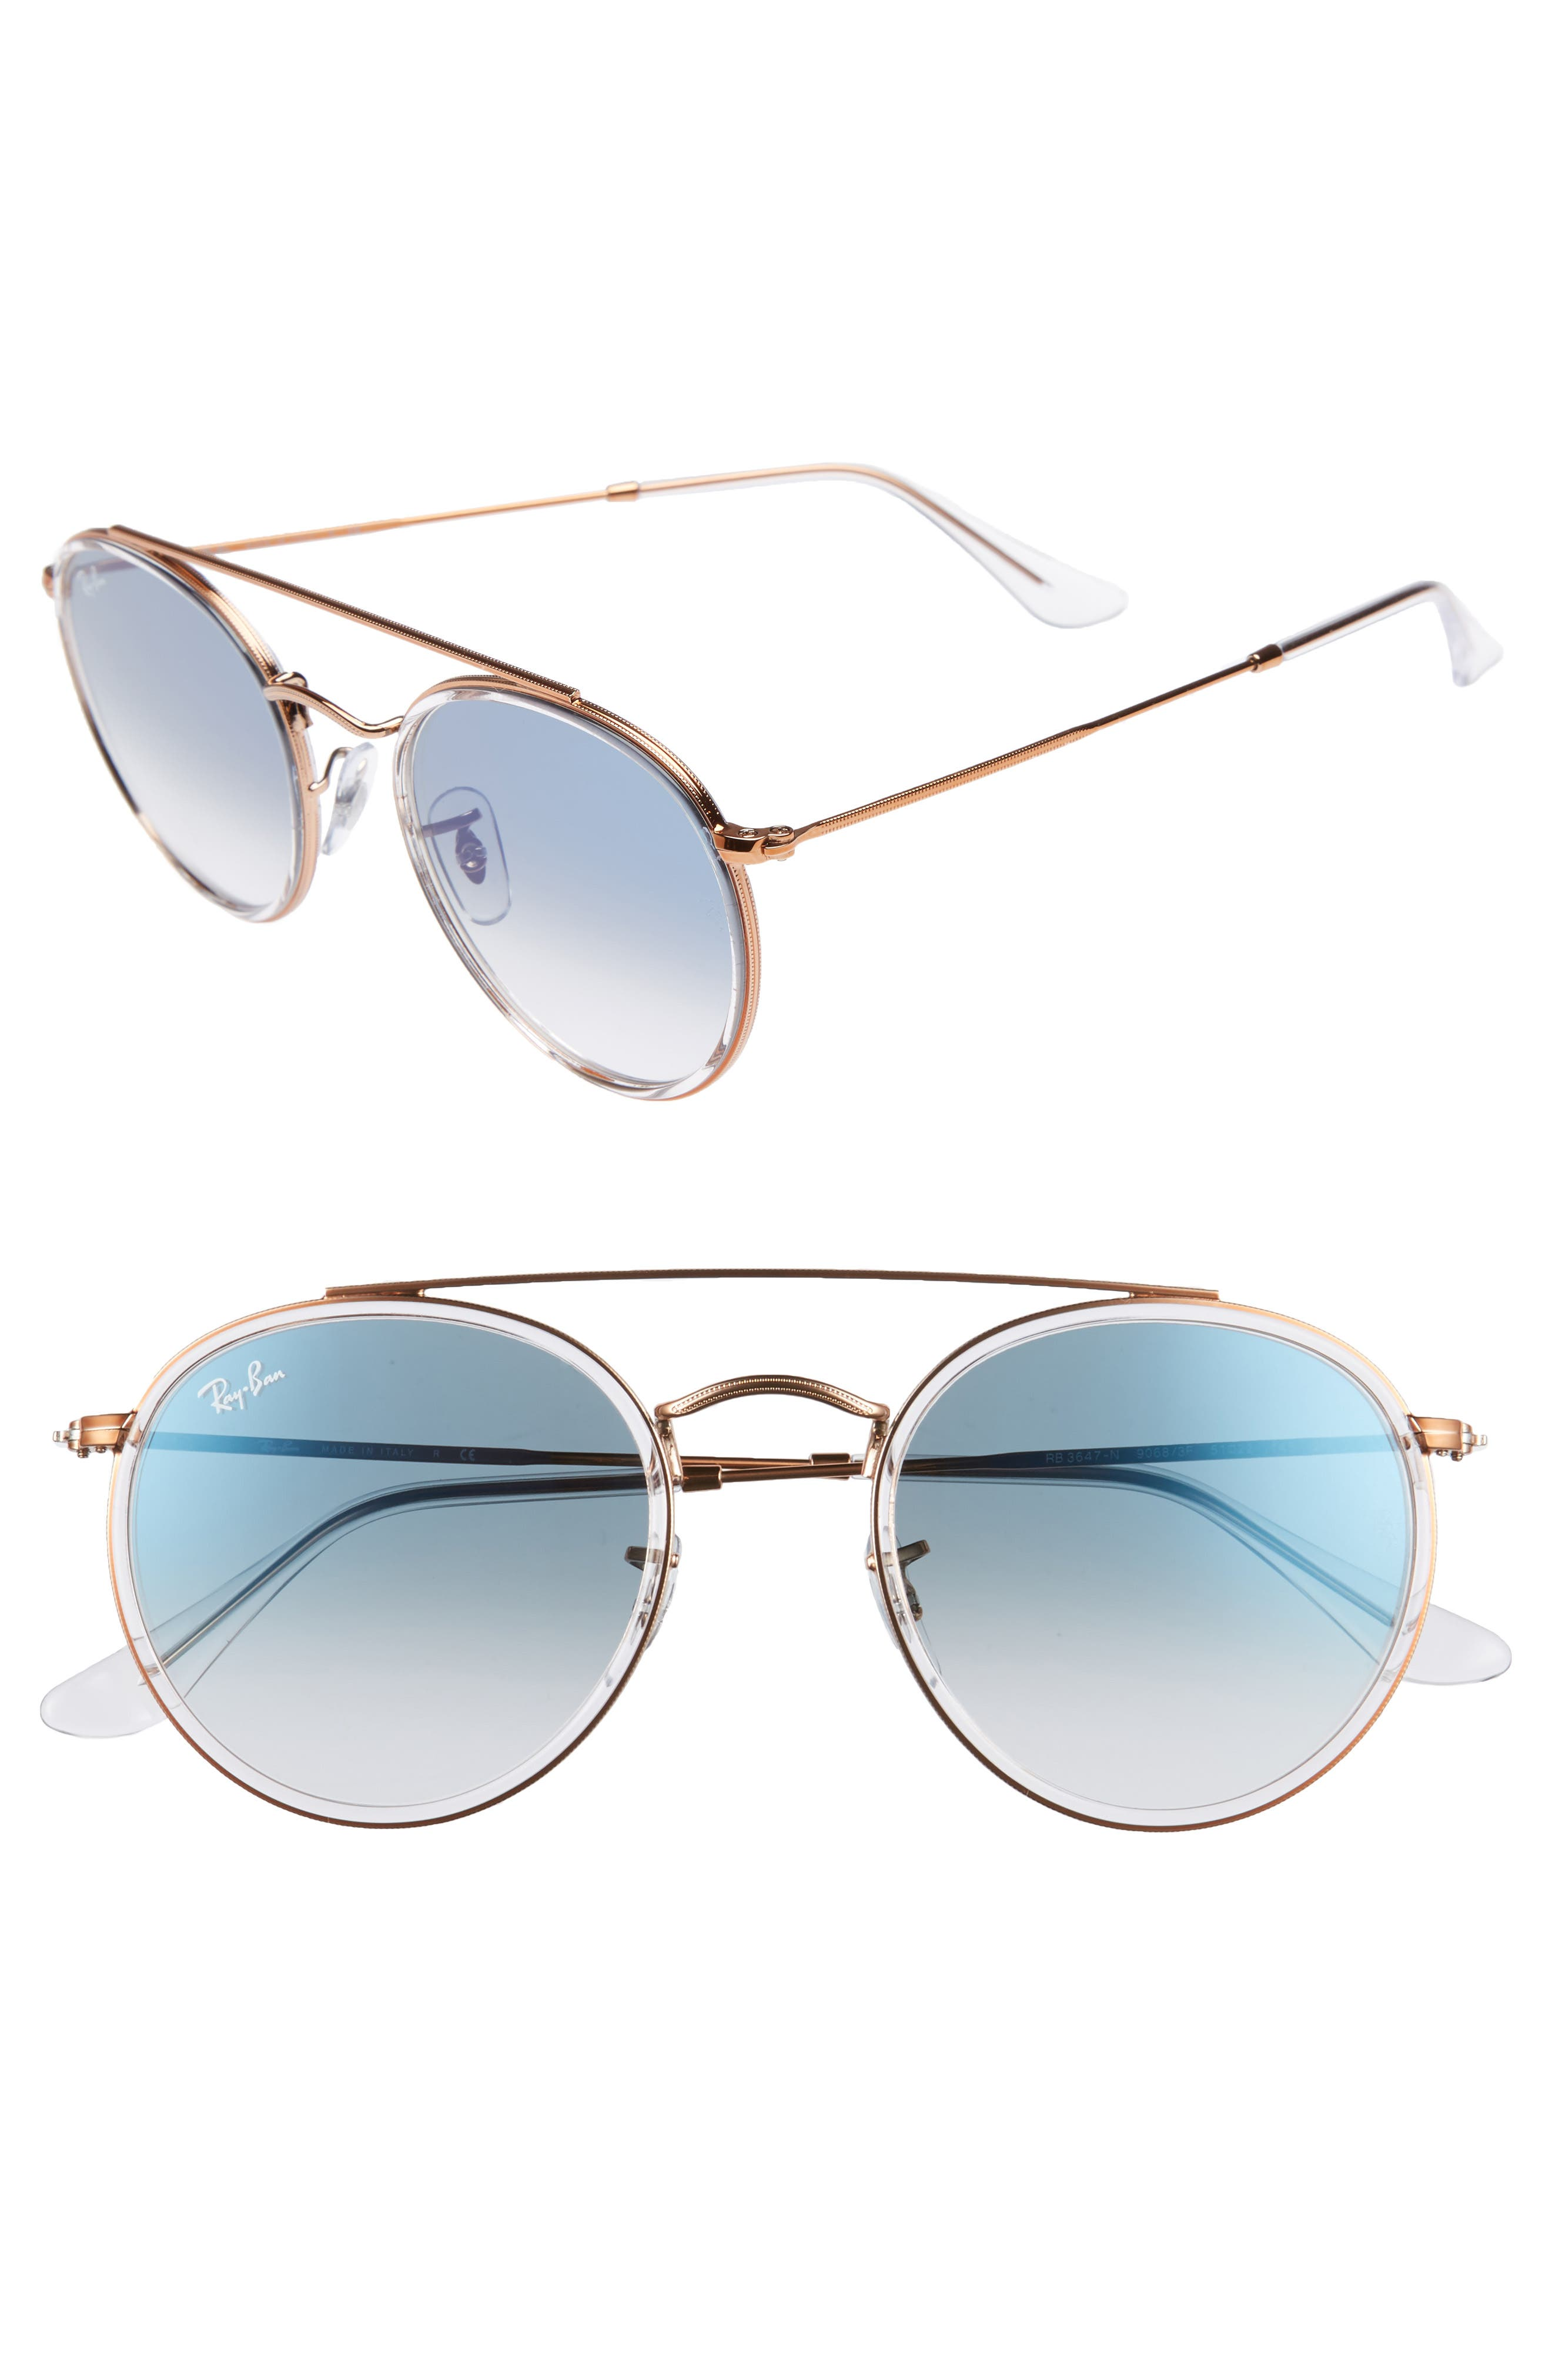 Main Image - Ray-Ban 51mm Aviator Gradient Lens Sunglasses